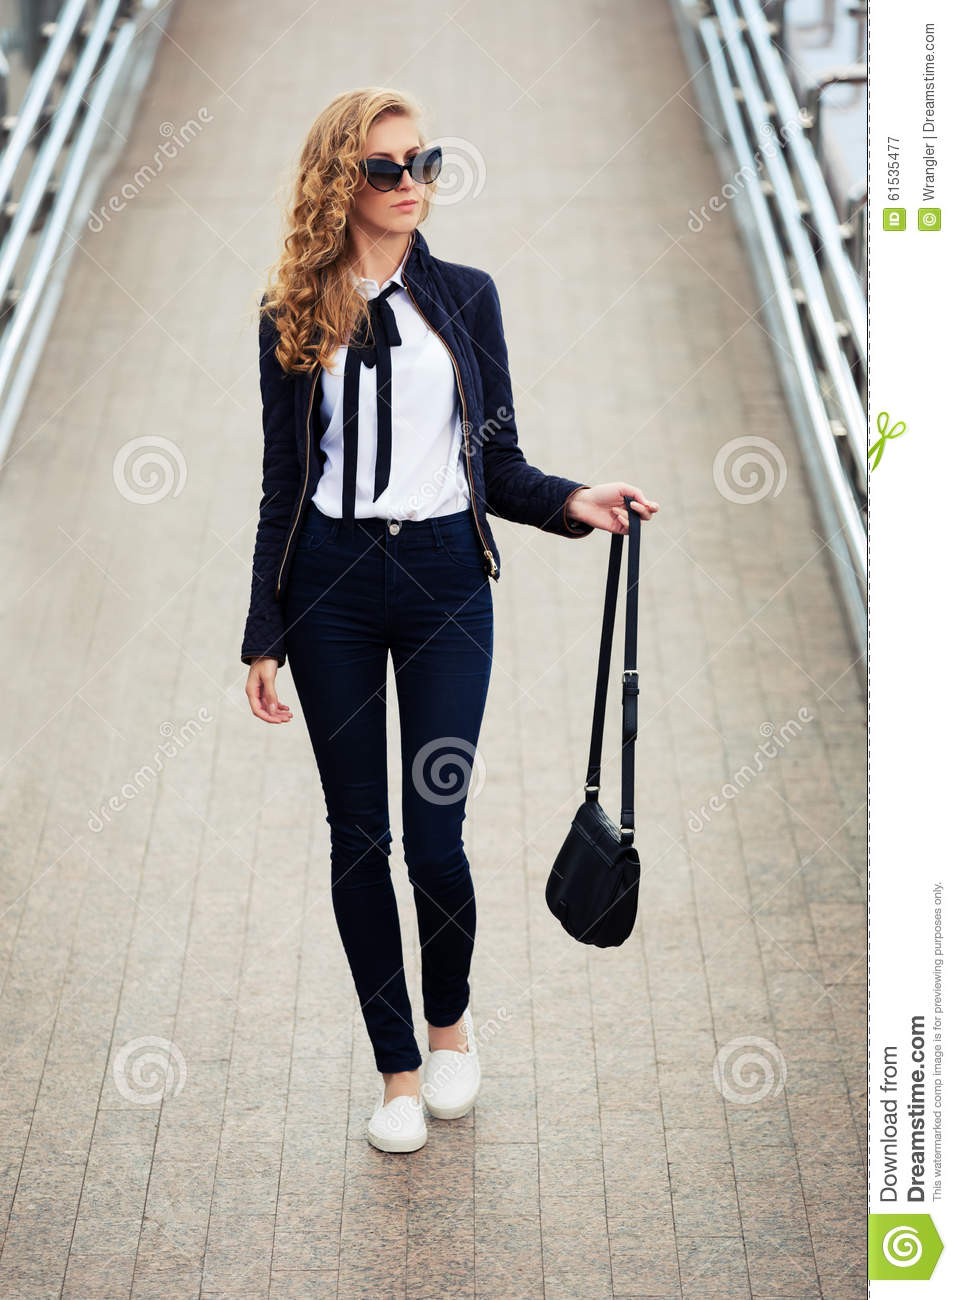 Young Fashion Business Woman In Sunglasses On The City Street Stock Photo - Image -1083